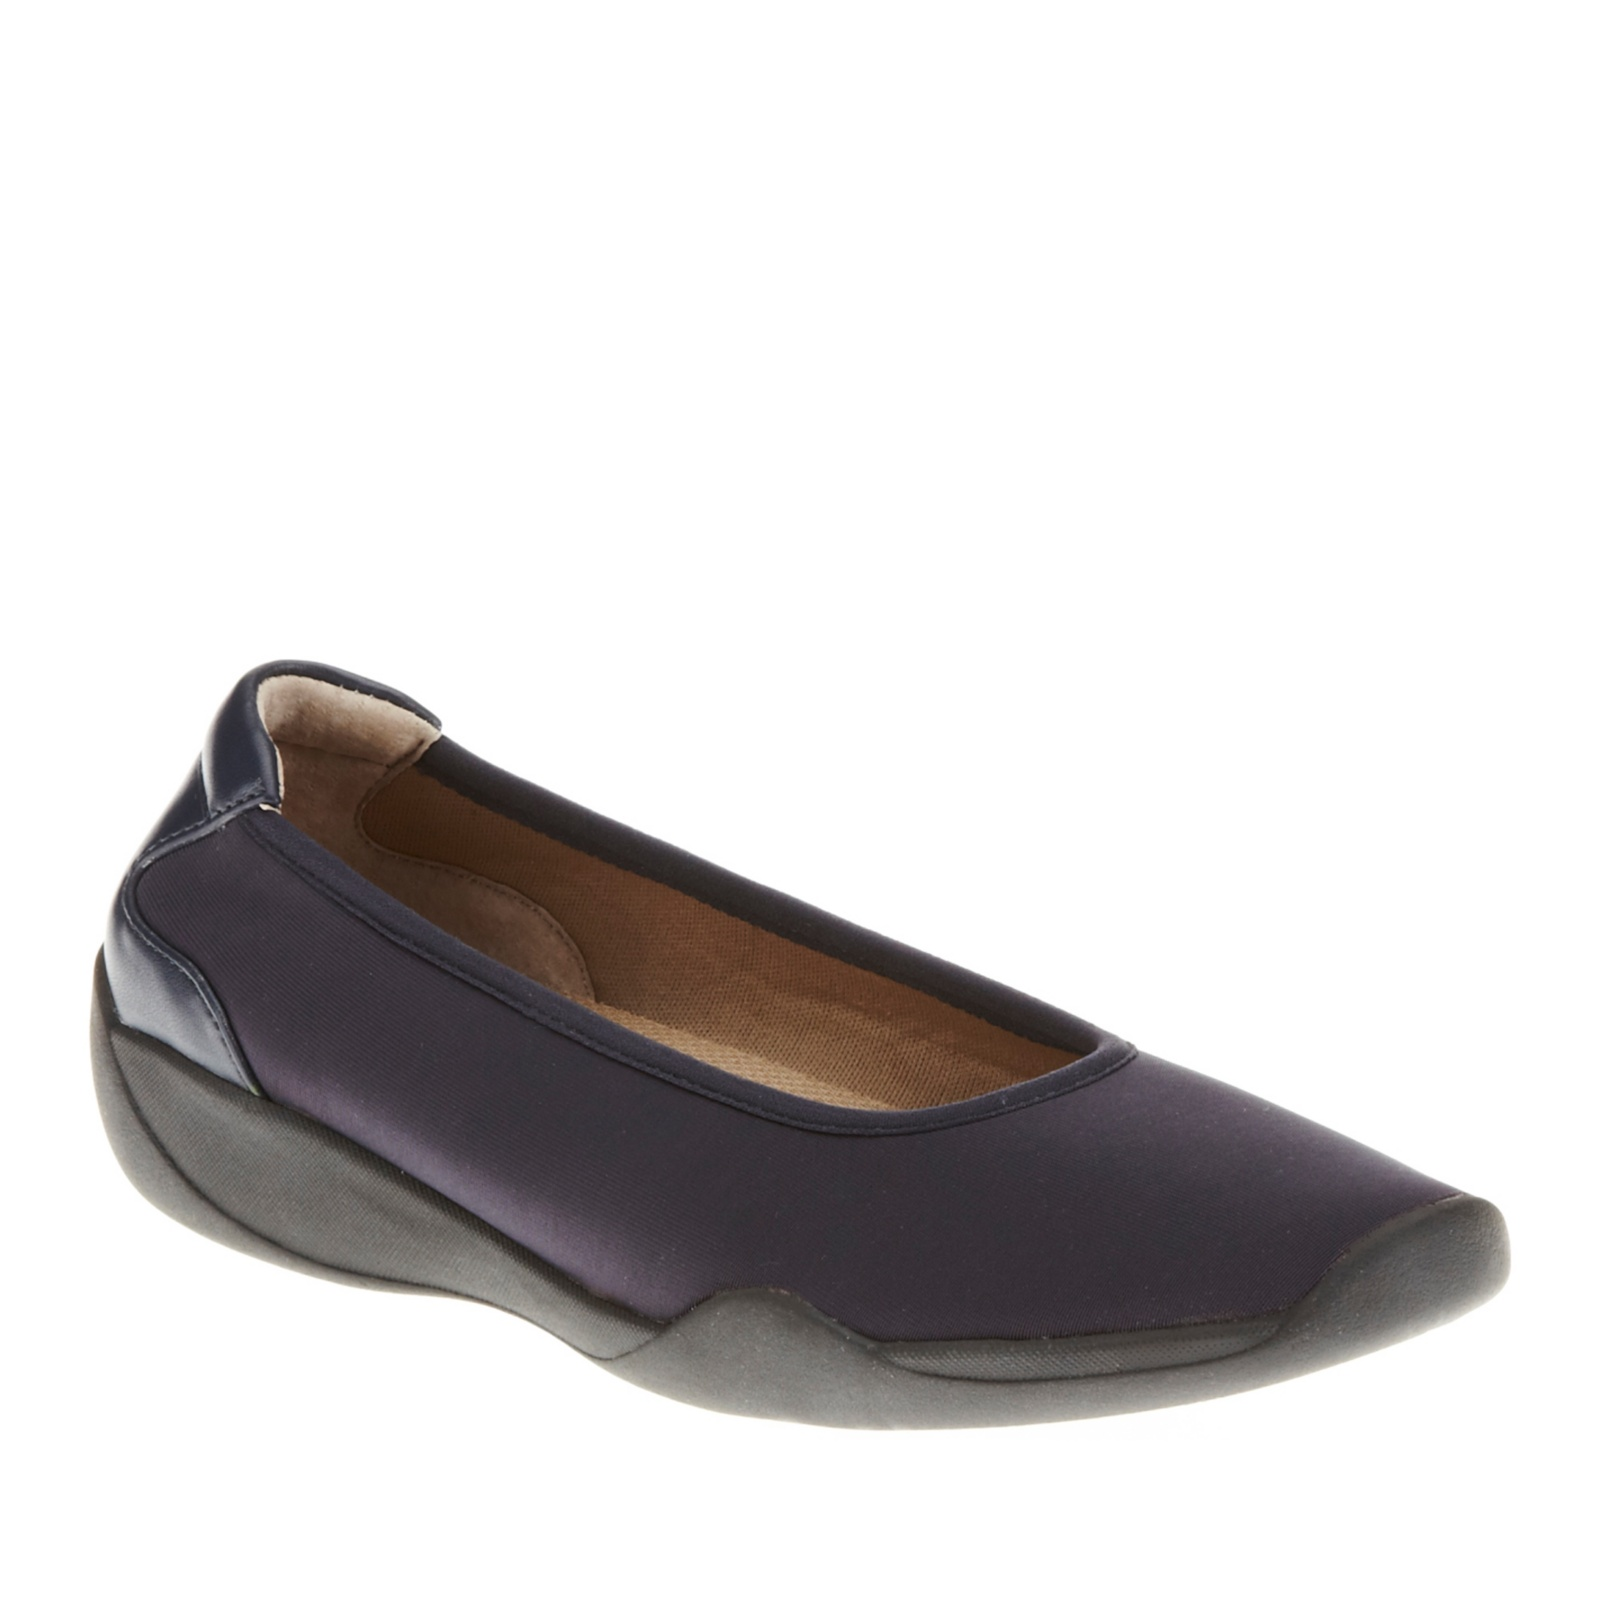 Footsmart Stretchies Joyce Slip On Shoes